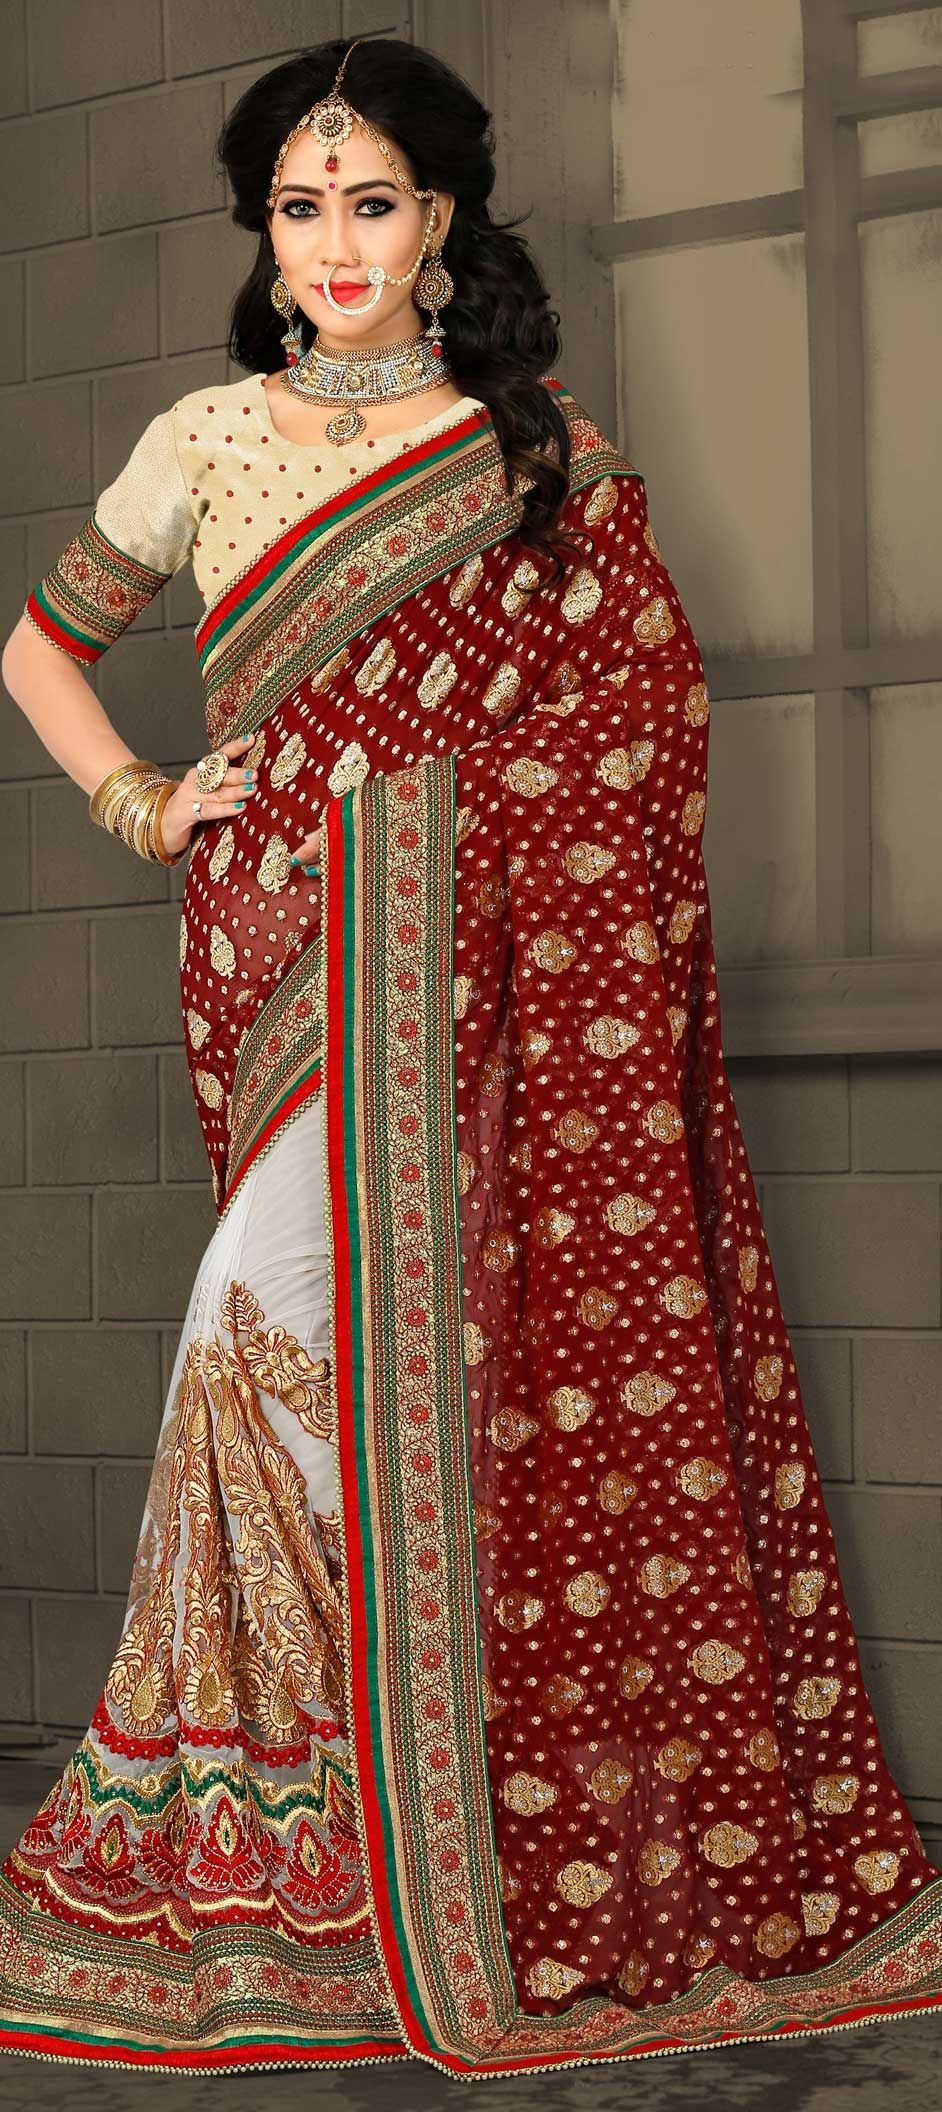 e0a3d4fd661b 767535: Red and Maroon, White and Off White color family Bridal ...